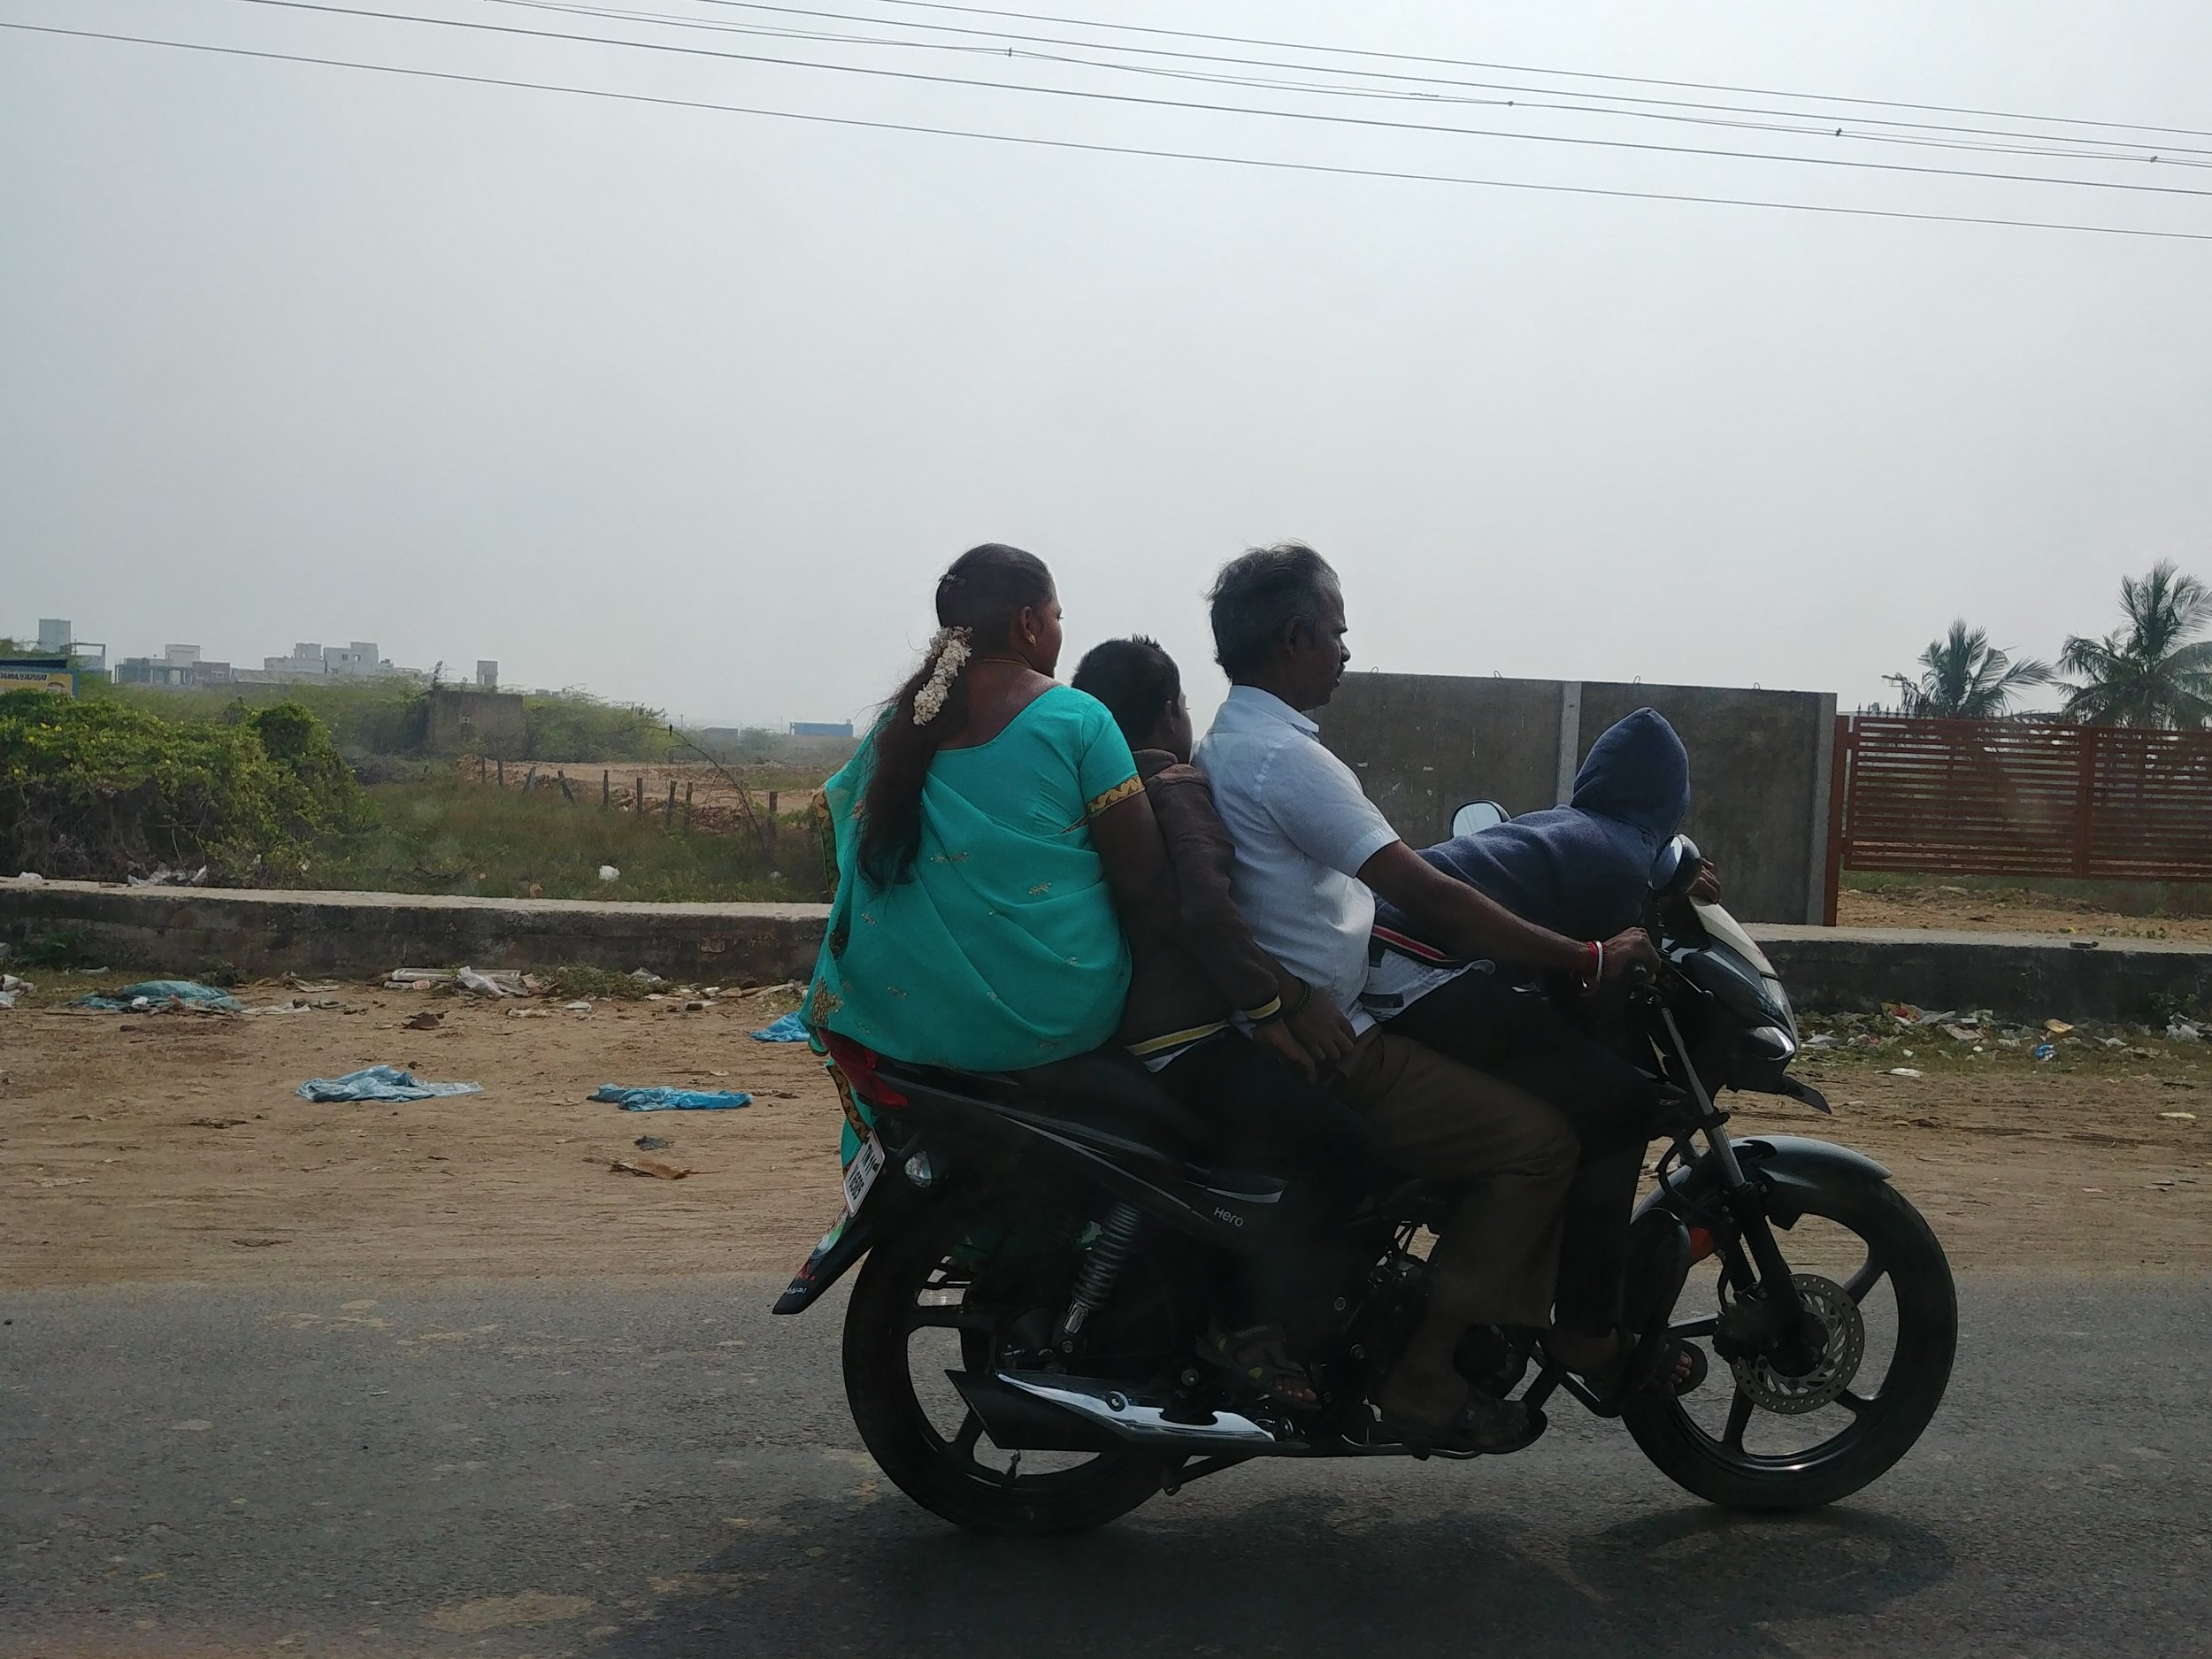 """""""Feels so natural to be back in India. Many families of 4 on a bike. No helmets...yikes!"""" - Livia"""